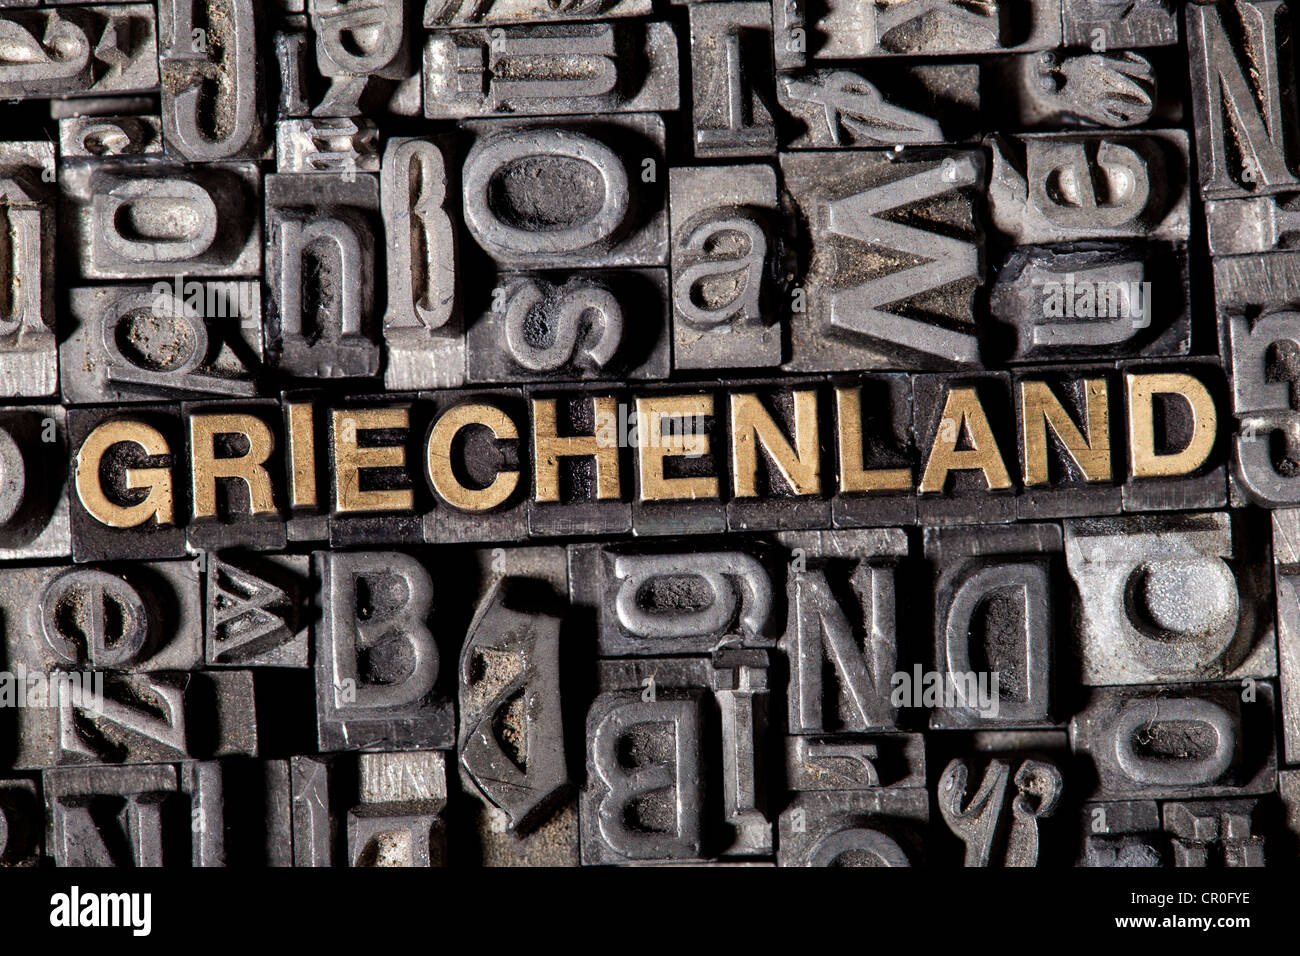 The word 'Griechenland', German for 'Greece', made of old lead type - Stock Image